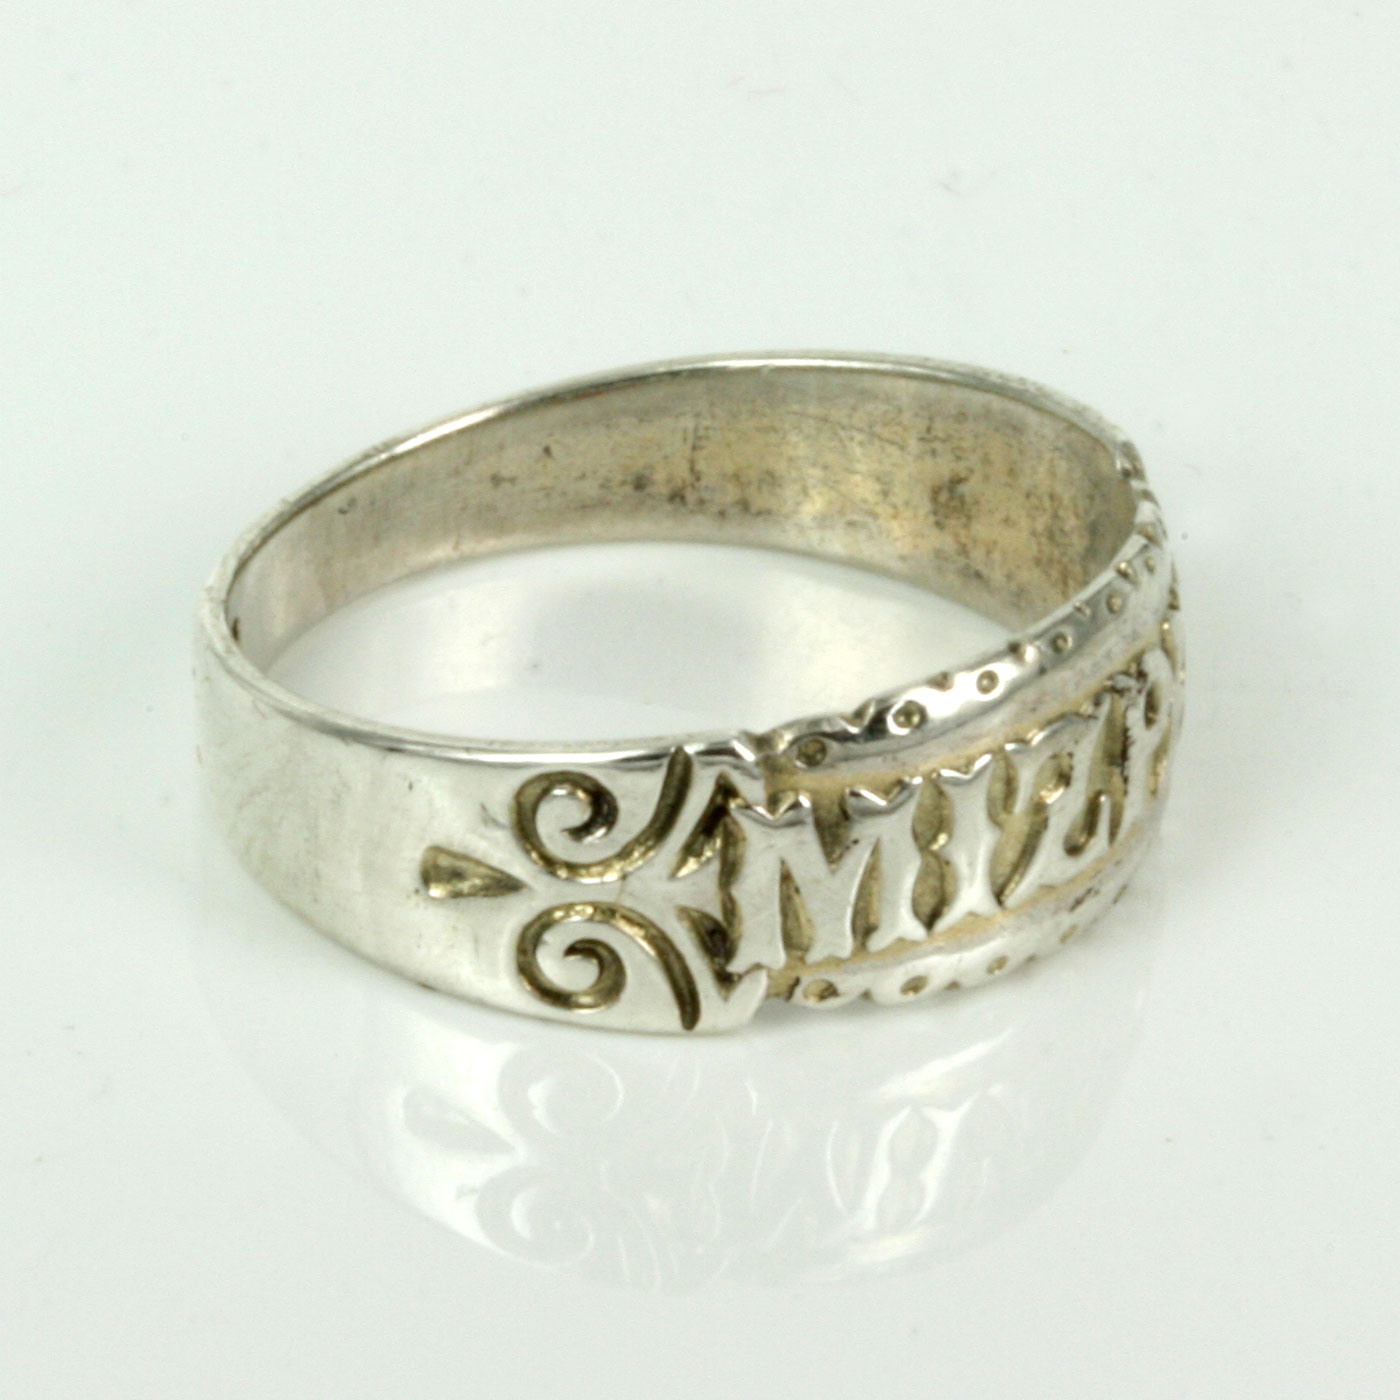 Buy Antique silver Mizpah ring made in 1886 Sold Items, Sold Rings ...